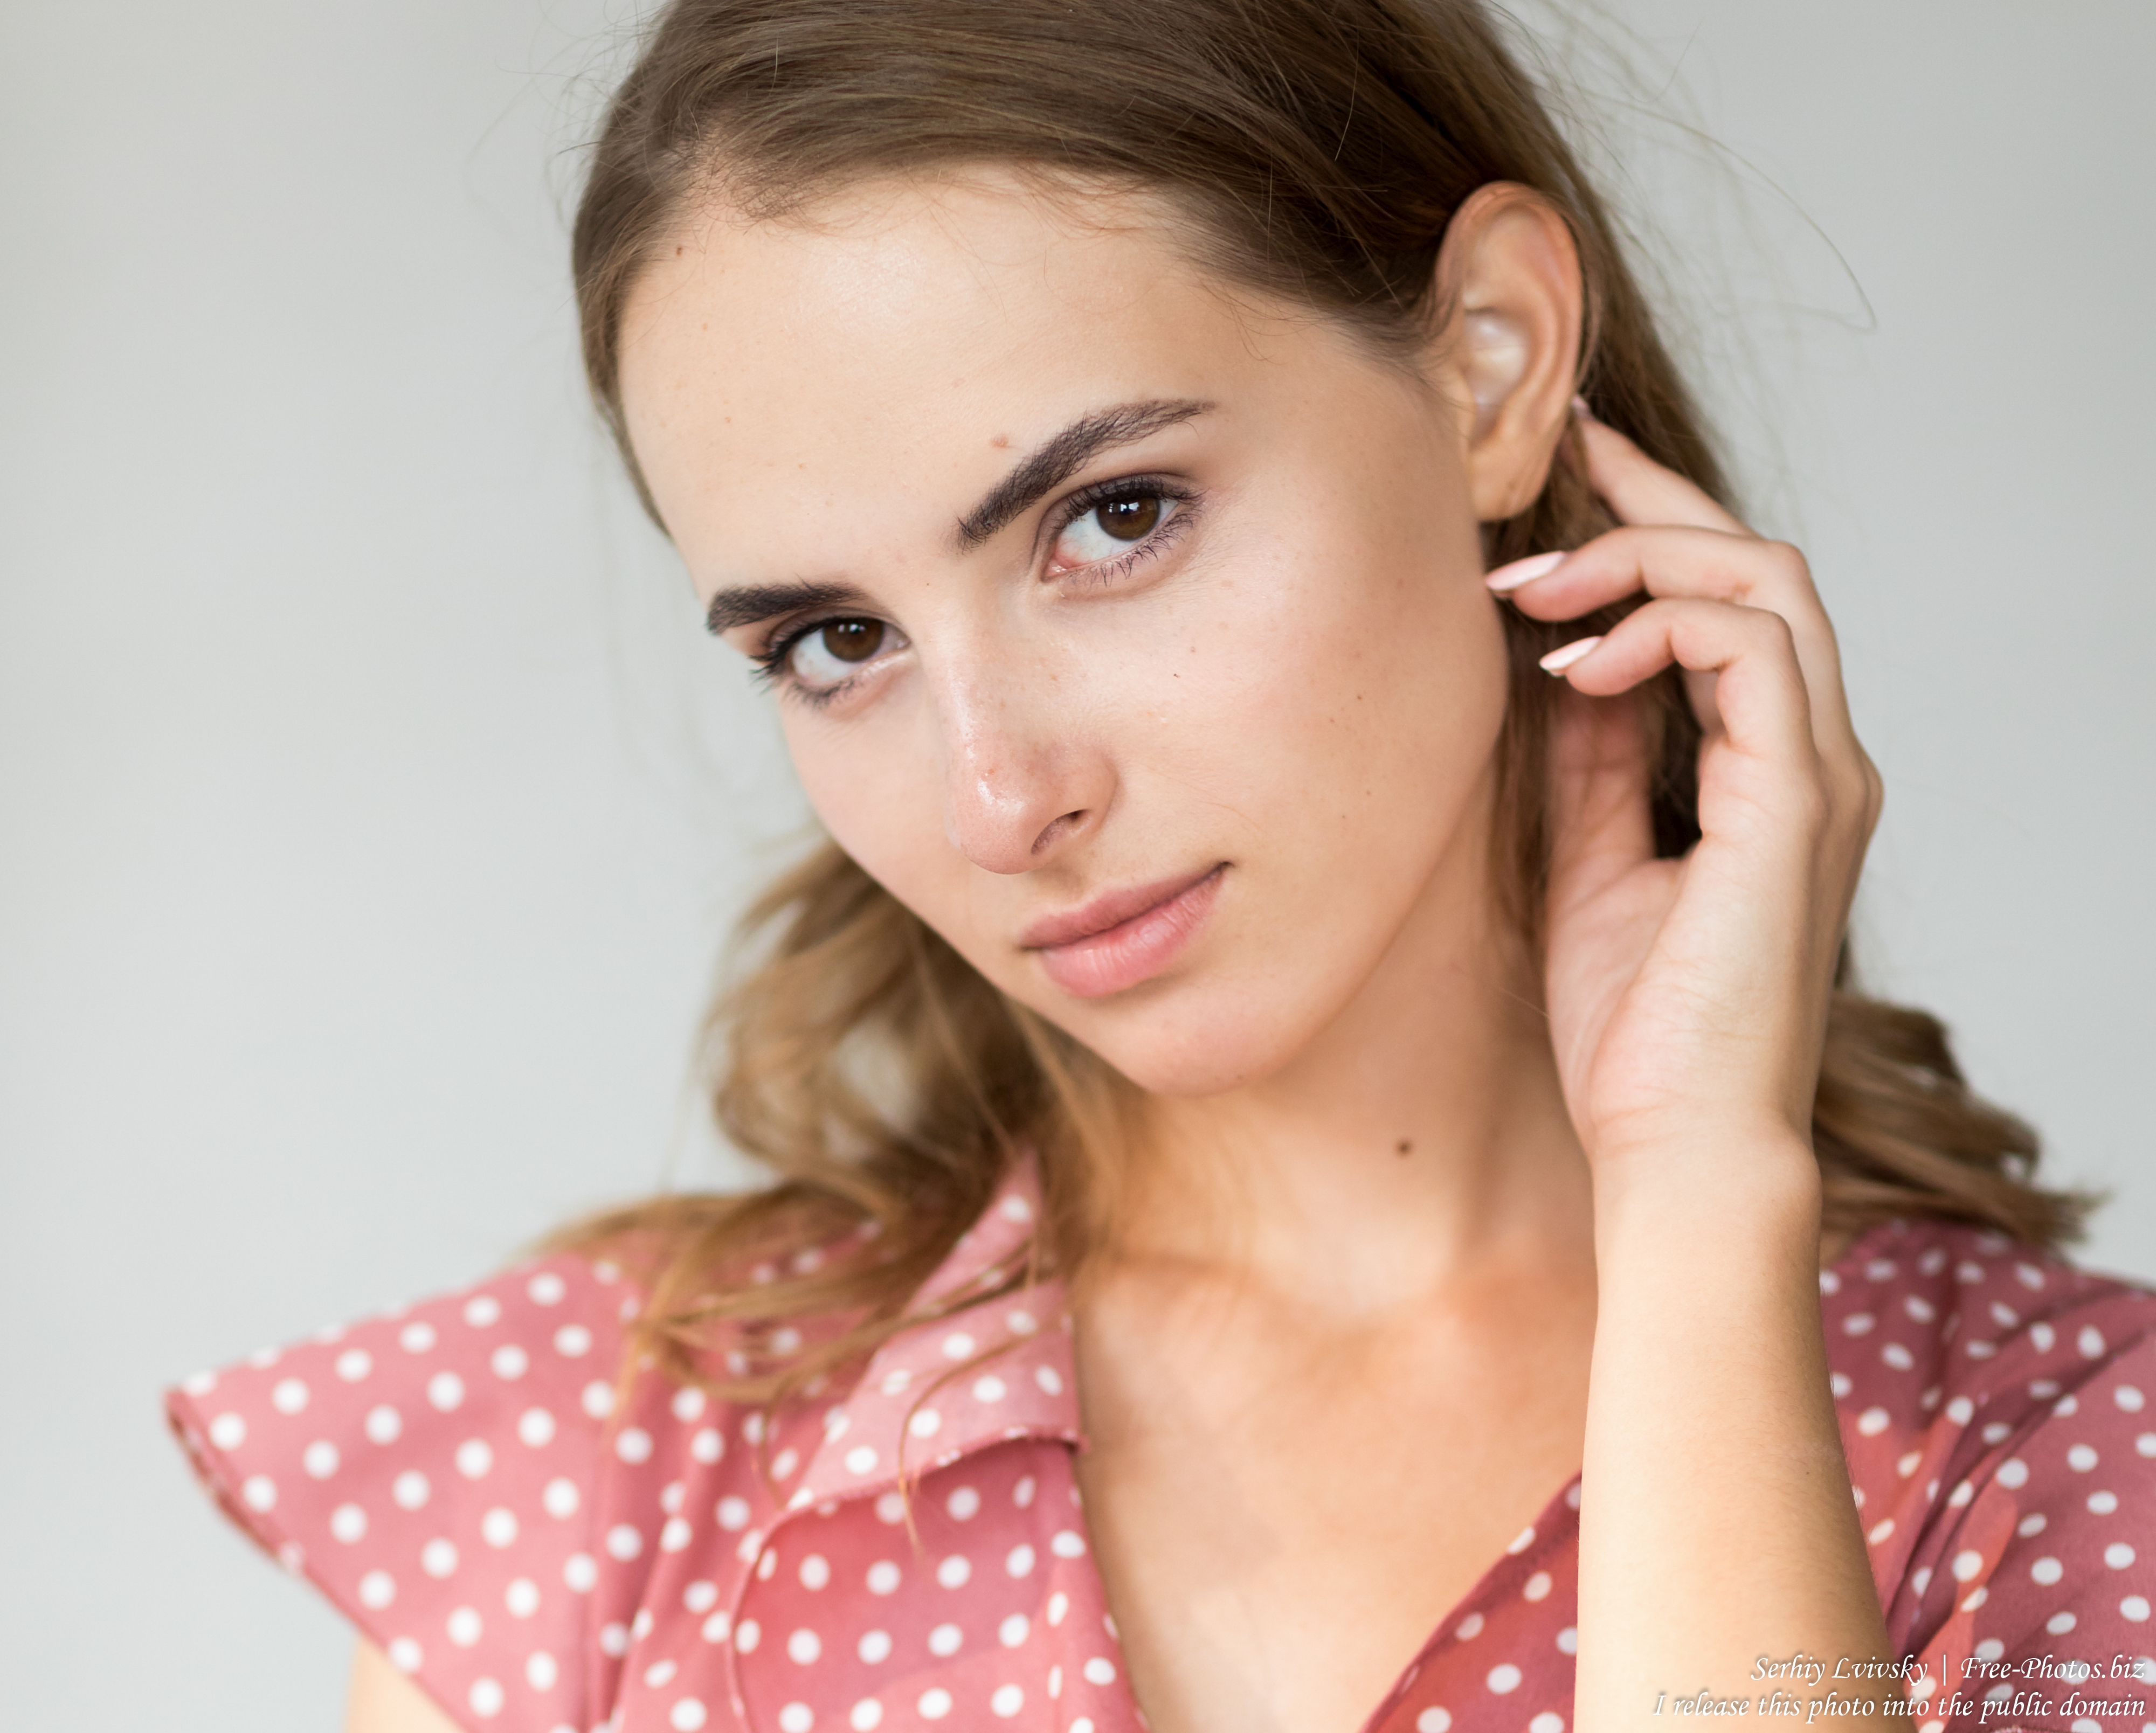 anna_a_20-year-old_fair-haired_girl_photographed_in_september_2019_by_serhiy_lvivsky_27